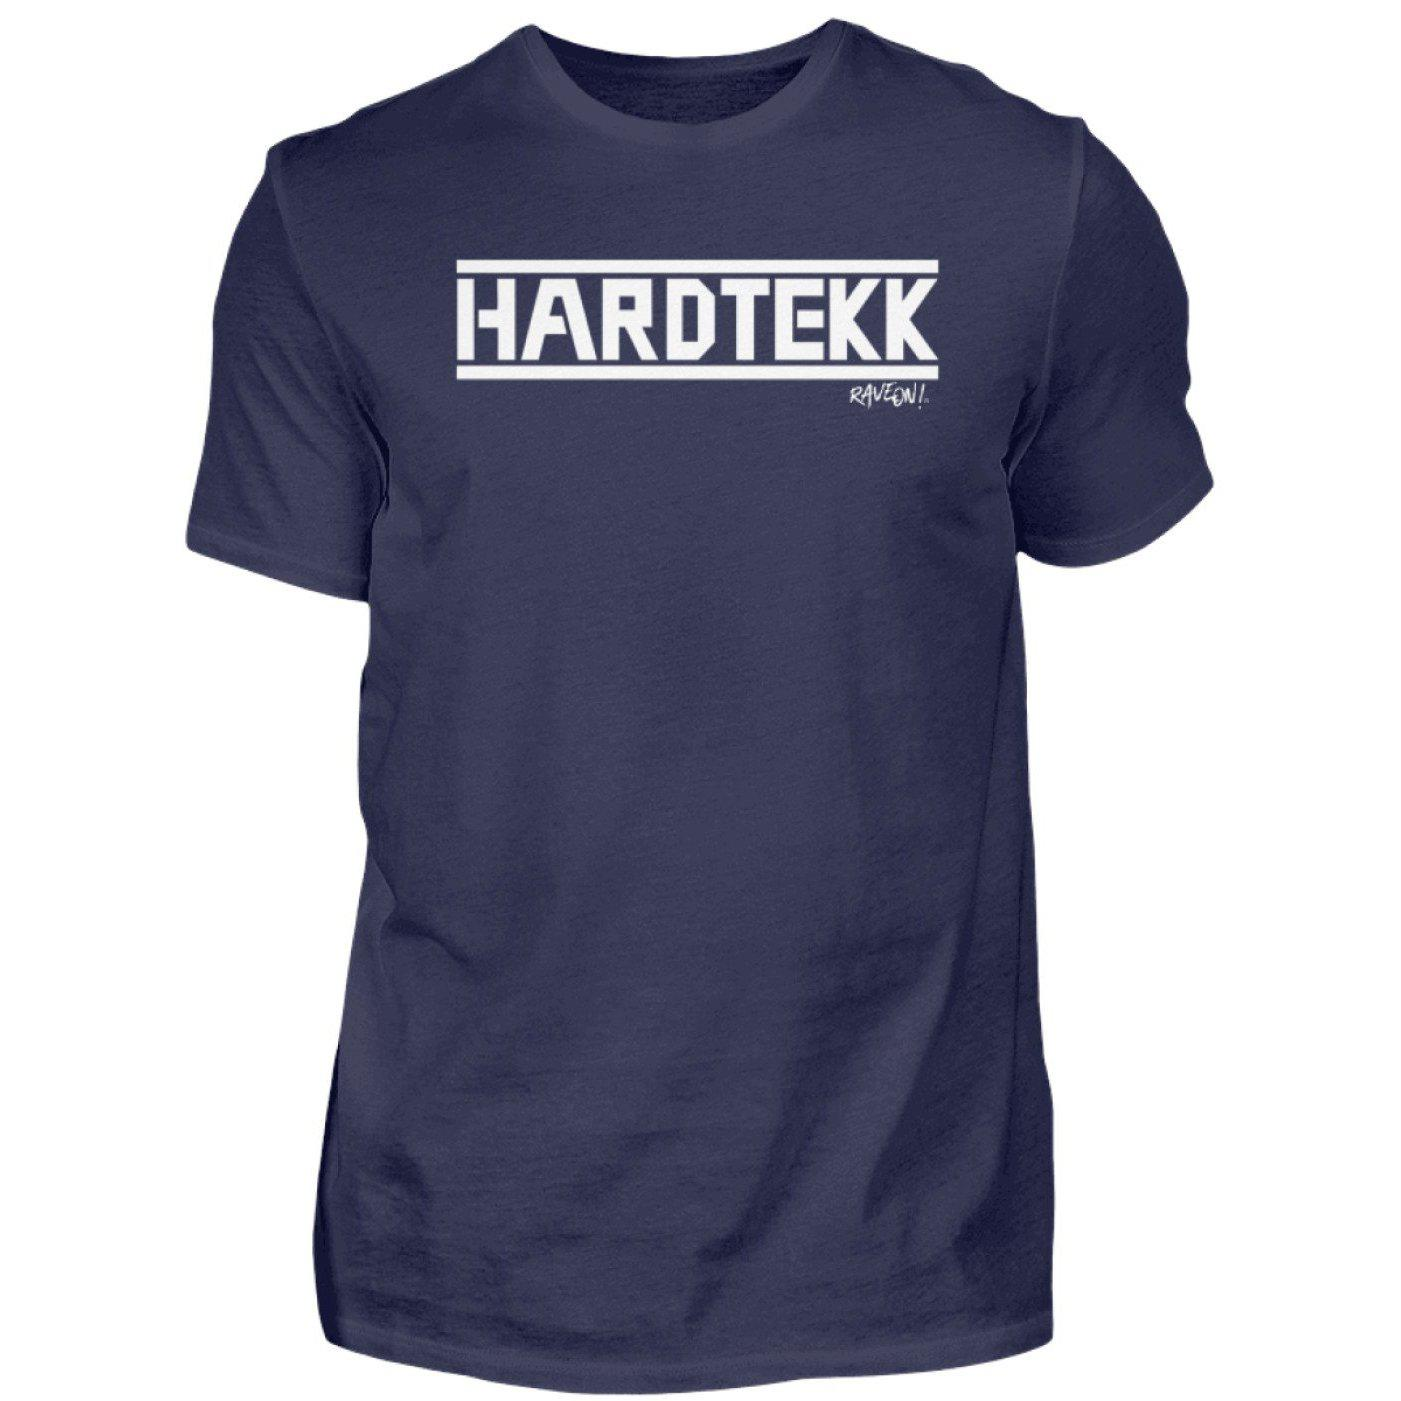 HARDTEKK - Rave On!® - Herren Shirt-Herren Basic T-Shirt-Navy-S-Rave-On! I www.rave-on.shop I Deine Rave & Techno Szene Shop I Design - HARDTEKK - Rave On!®, Global recommendation, hardtekk, on, rave, techno, Tekk, tekkno - Sexy Festival Streetwear , Clubwear & Raver Style